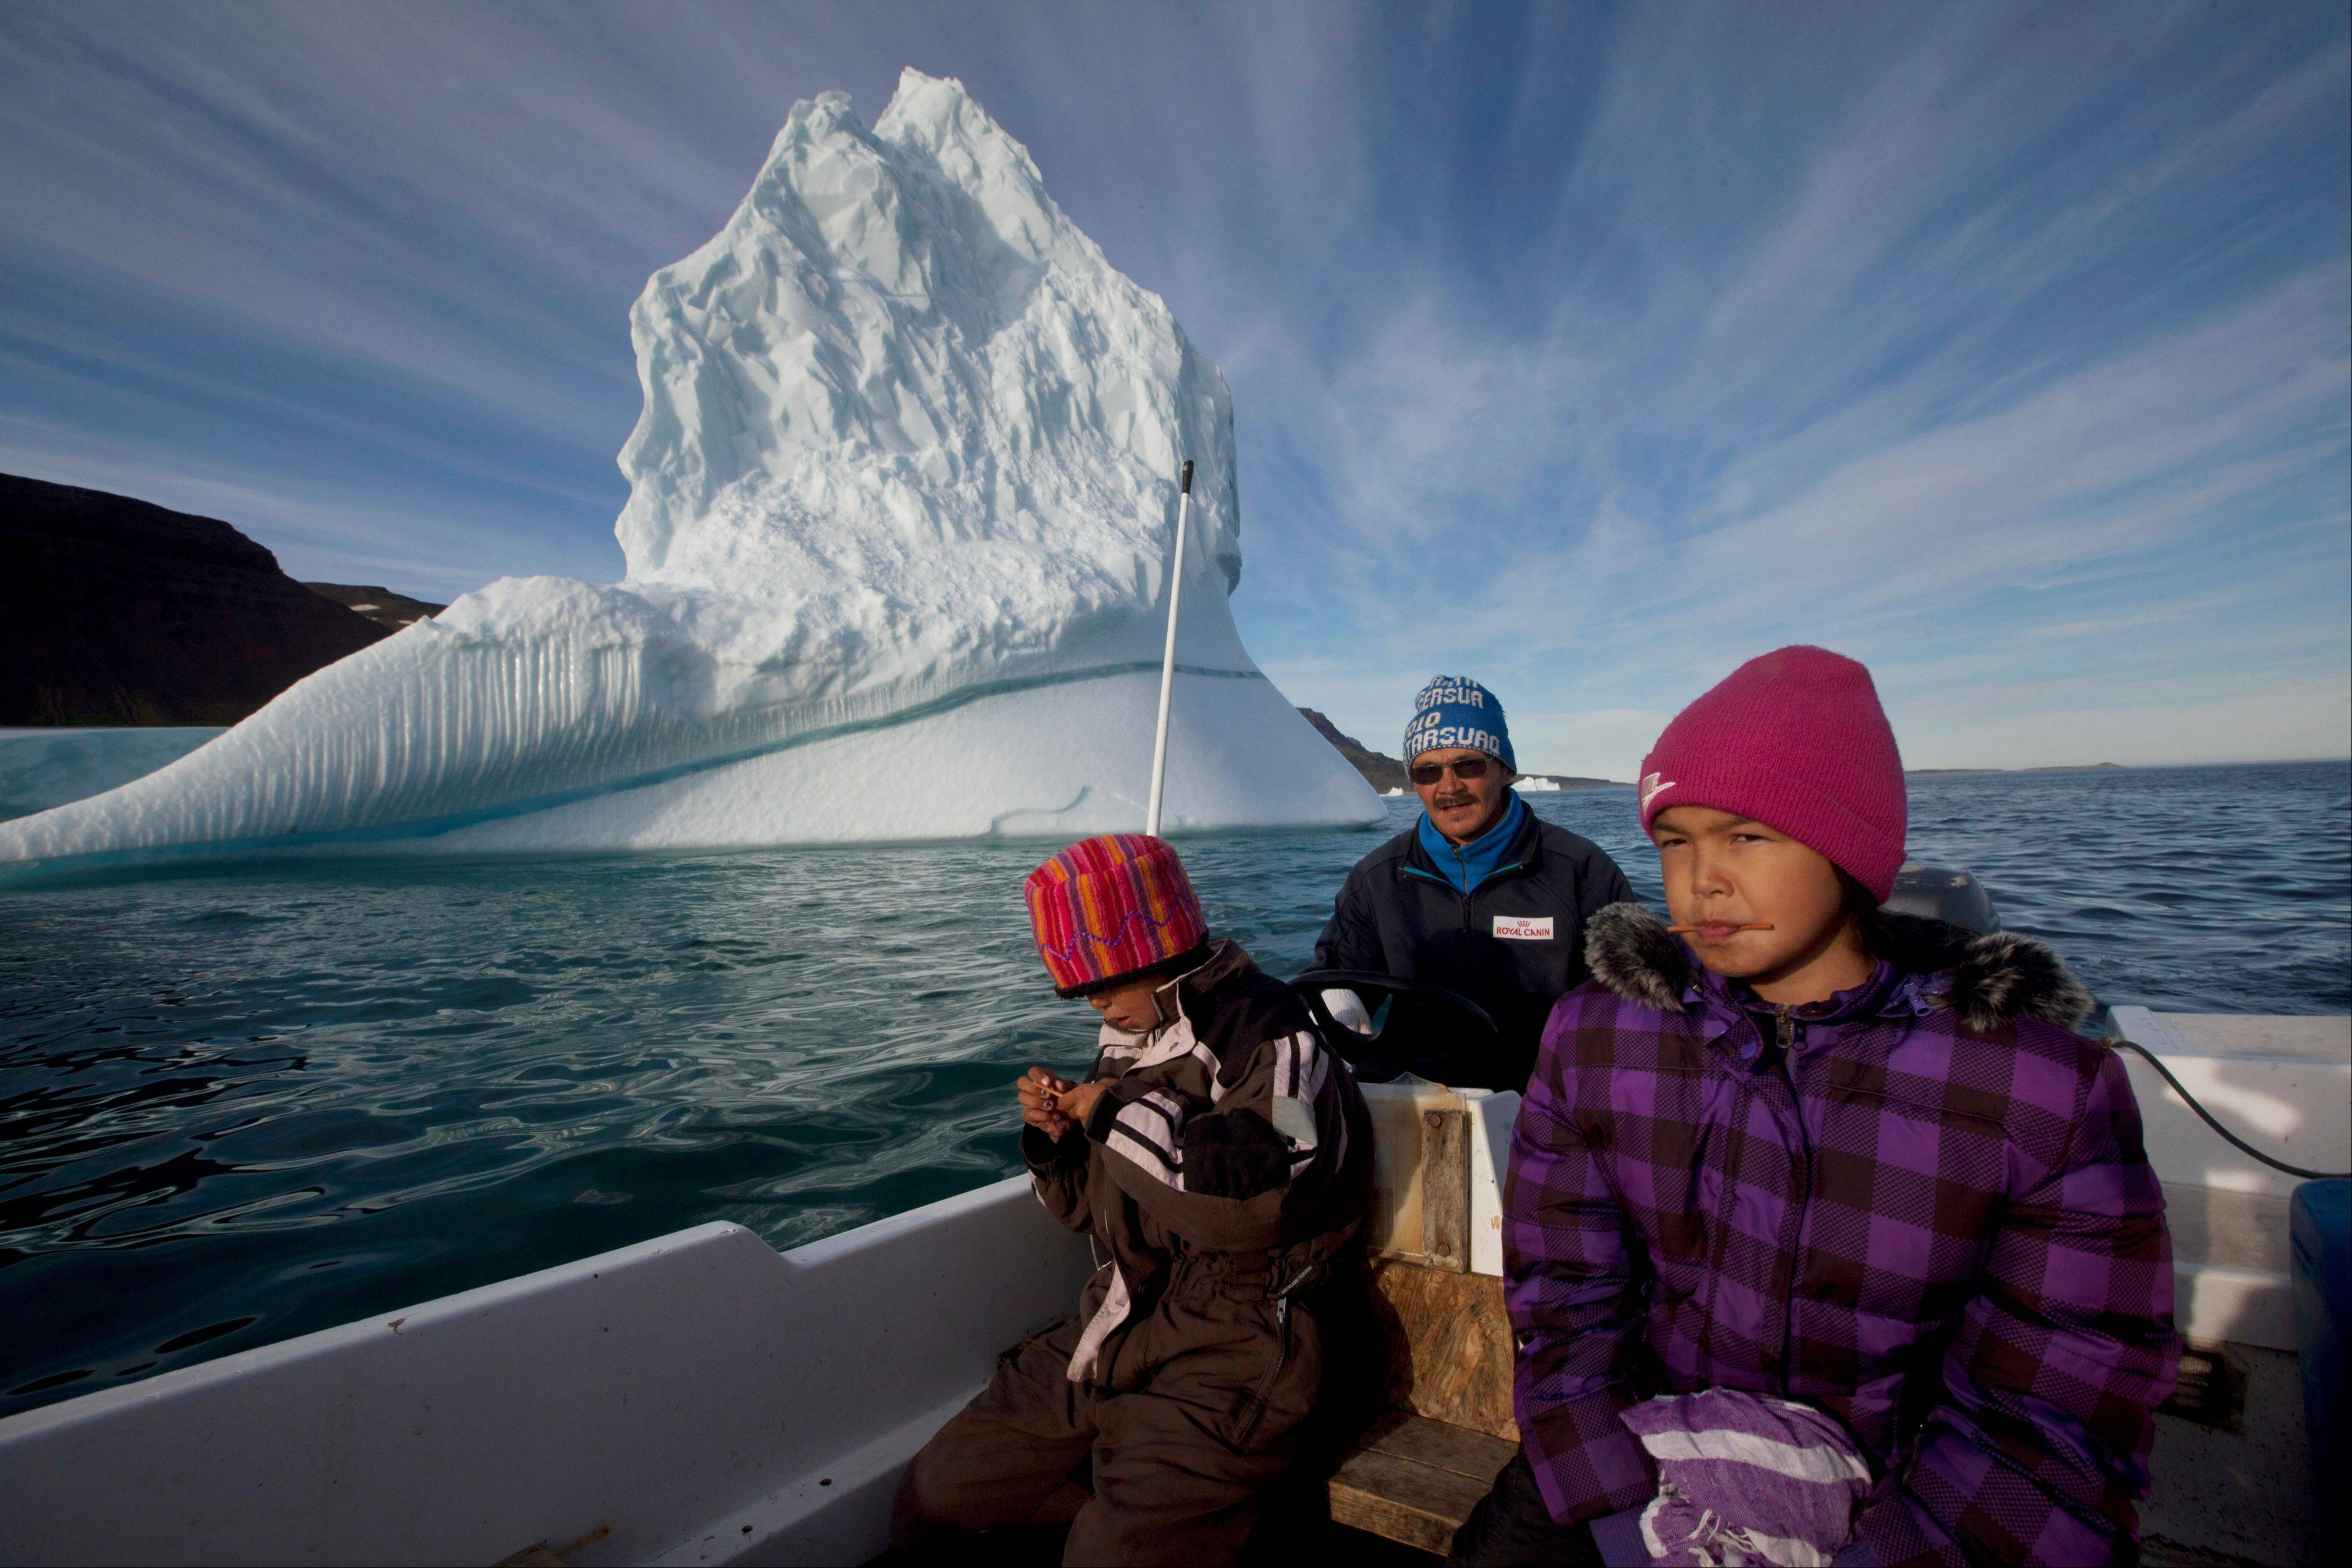 Inuit hunter Nukappi Brandt steers his small boat as he and his daughter Aaneeraq, 9, scan the water for seals, accompanied by his other daughter Luusi, 8, outside Qeqertarsuaq, Disko Island, Greenland. Brandt, 49, has been a hunter since age 14, and said roughly 20 years ago, when winter sea ice became too thin to support dogsleds, seal hunting ceased to be a sustainable way of life here.